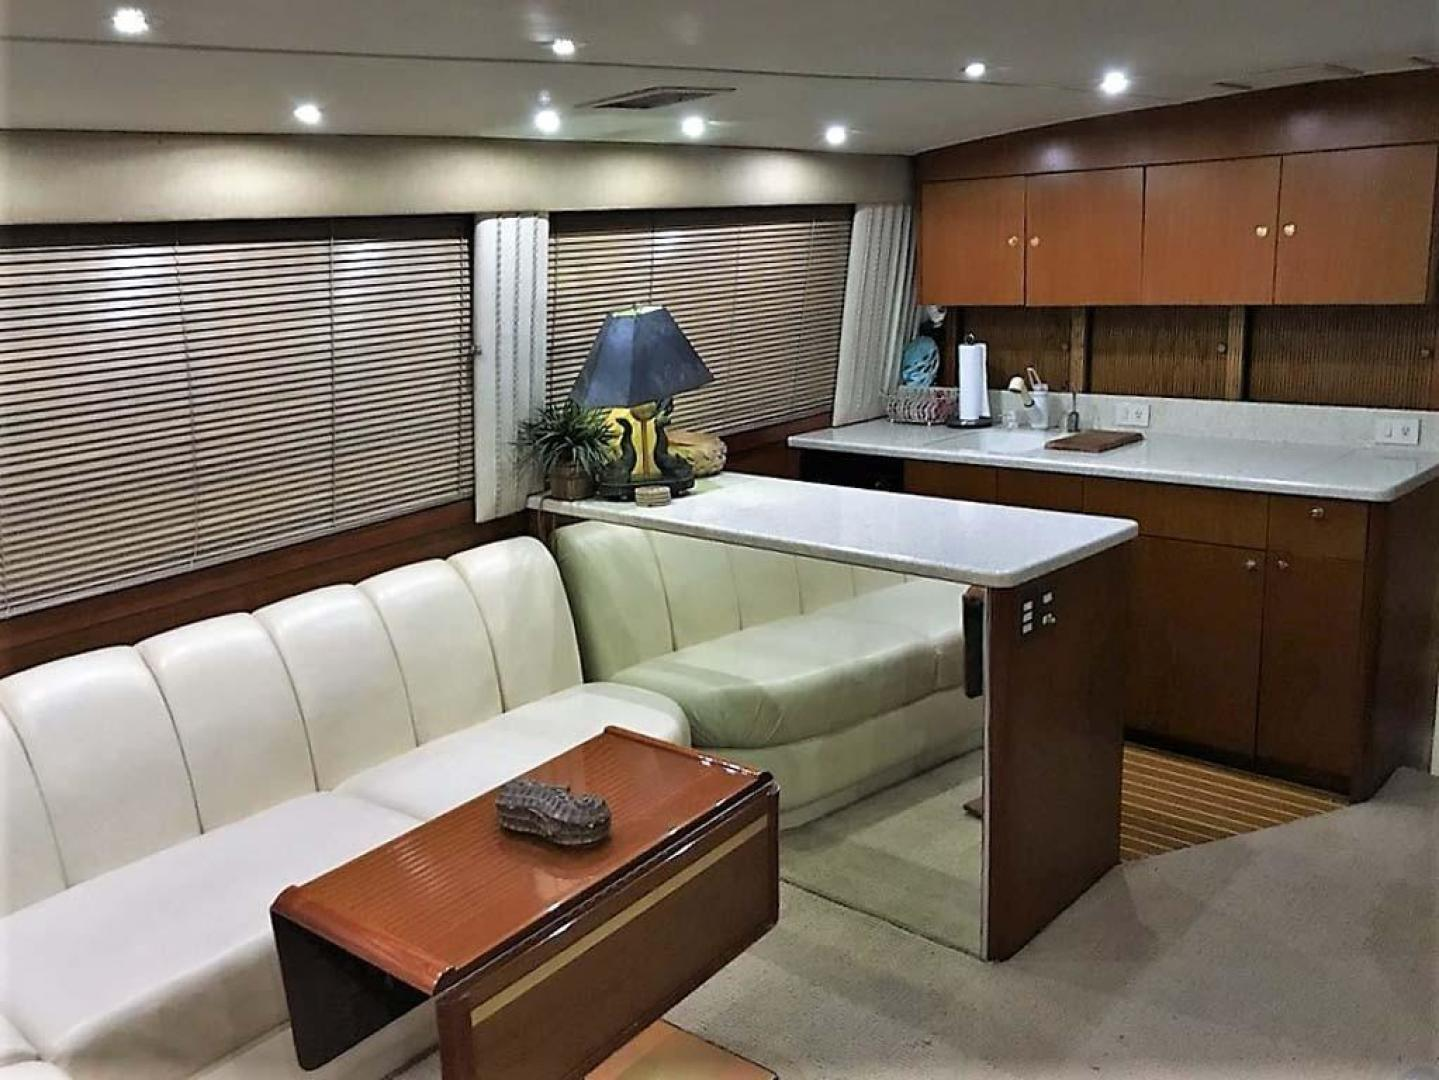 Ocean-Yachts-53-Super-Sport-1998-Made-in-the-Shade-Stuart-United-States-Port-Salon-929951